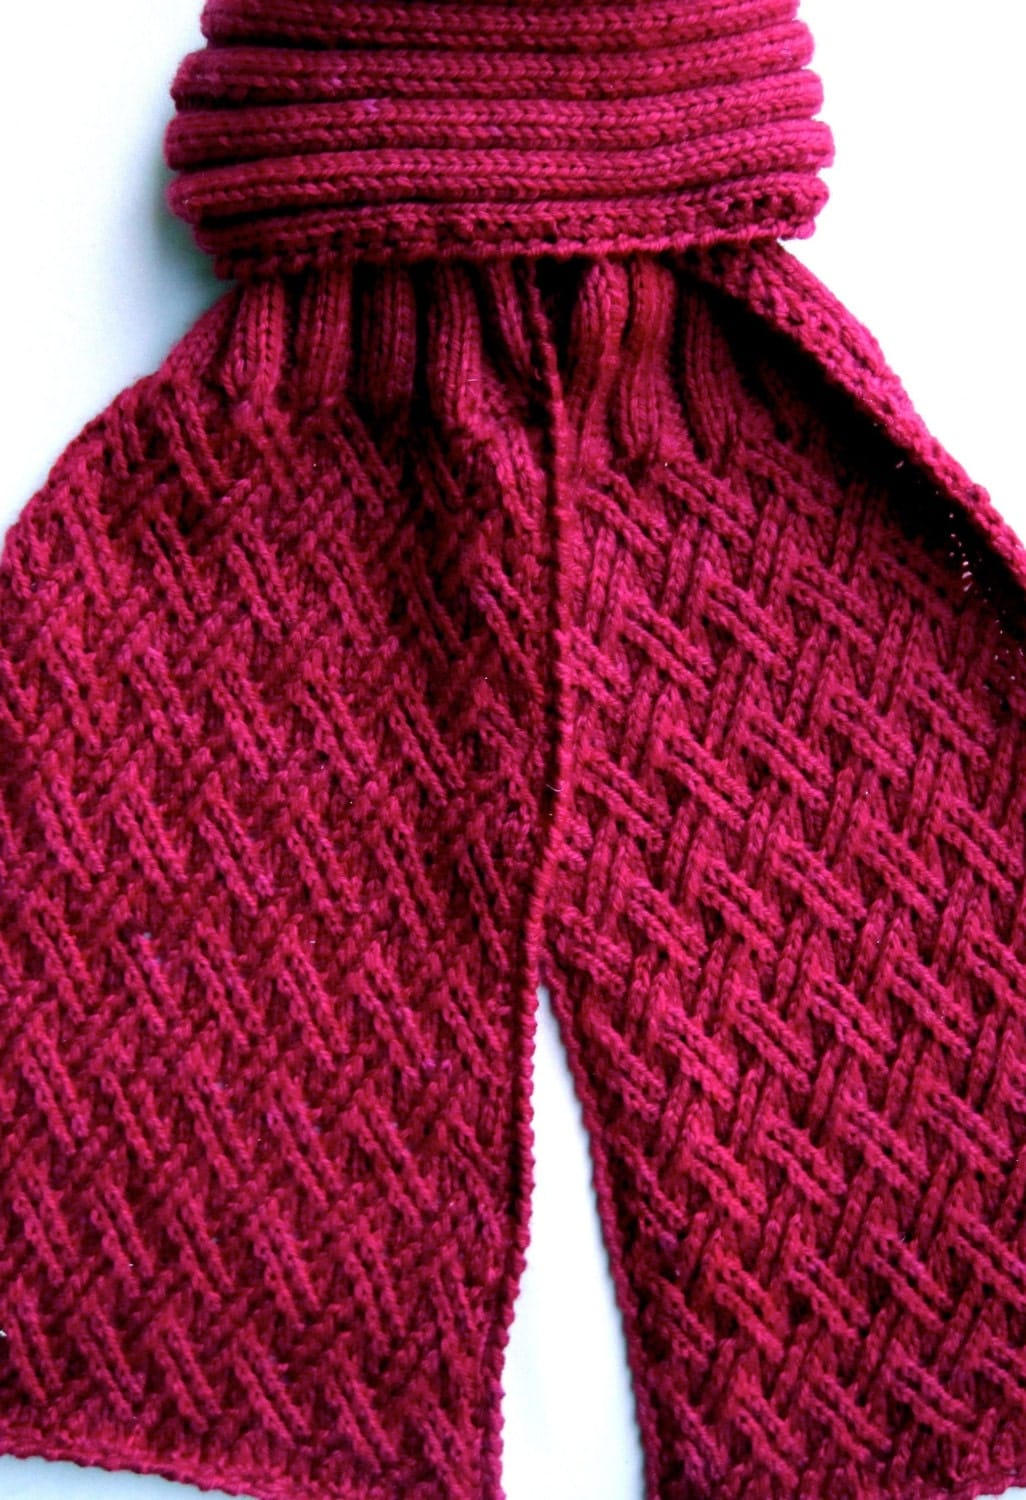 Knitting Pattern Twisted Scarf : Knit Scarf Pattern: Twisted Criss Cross Turtleneck Scarf